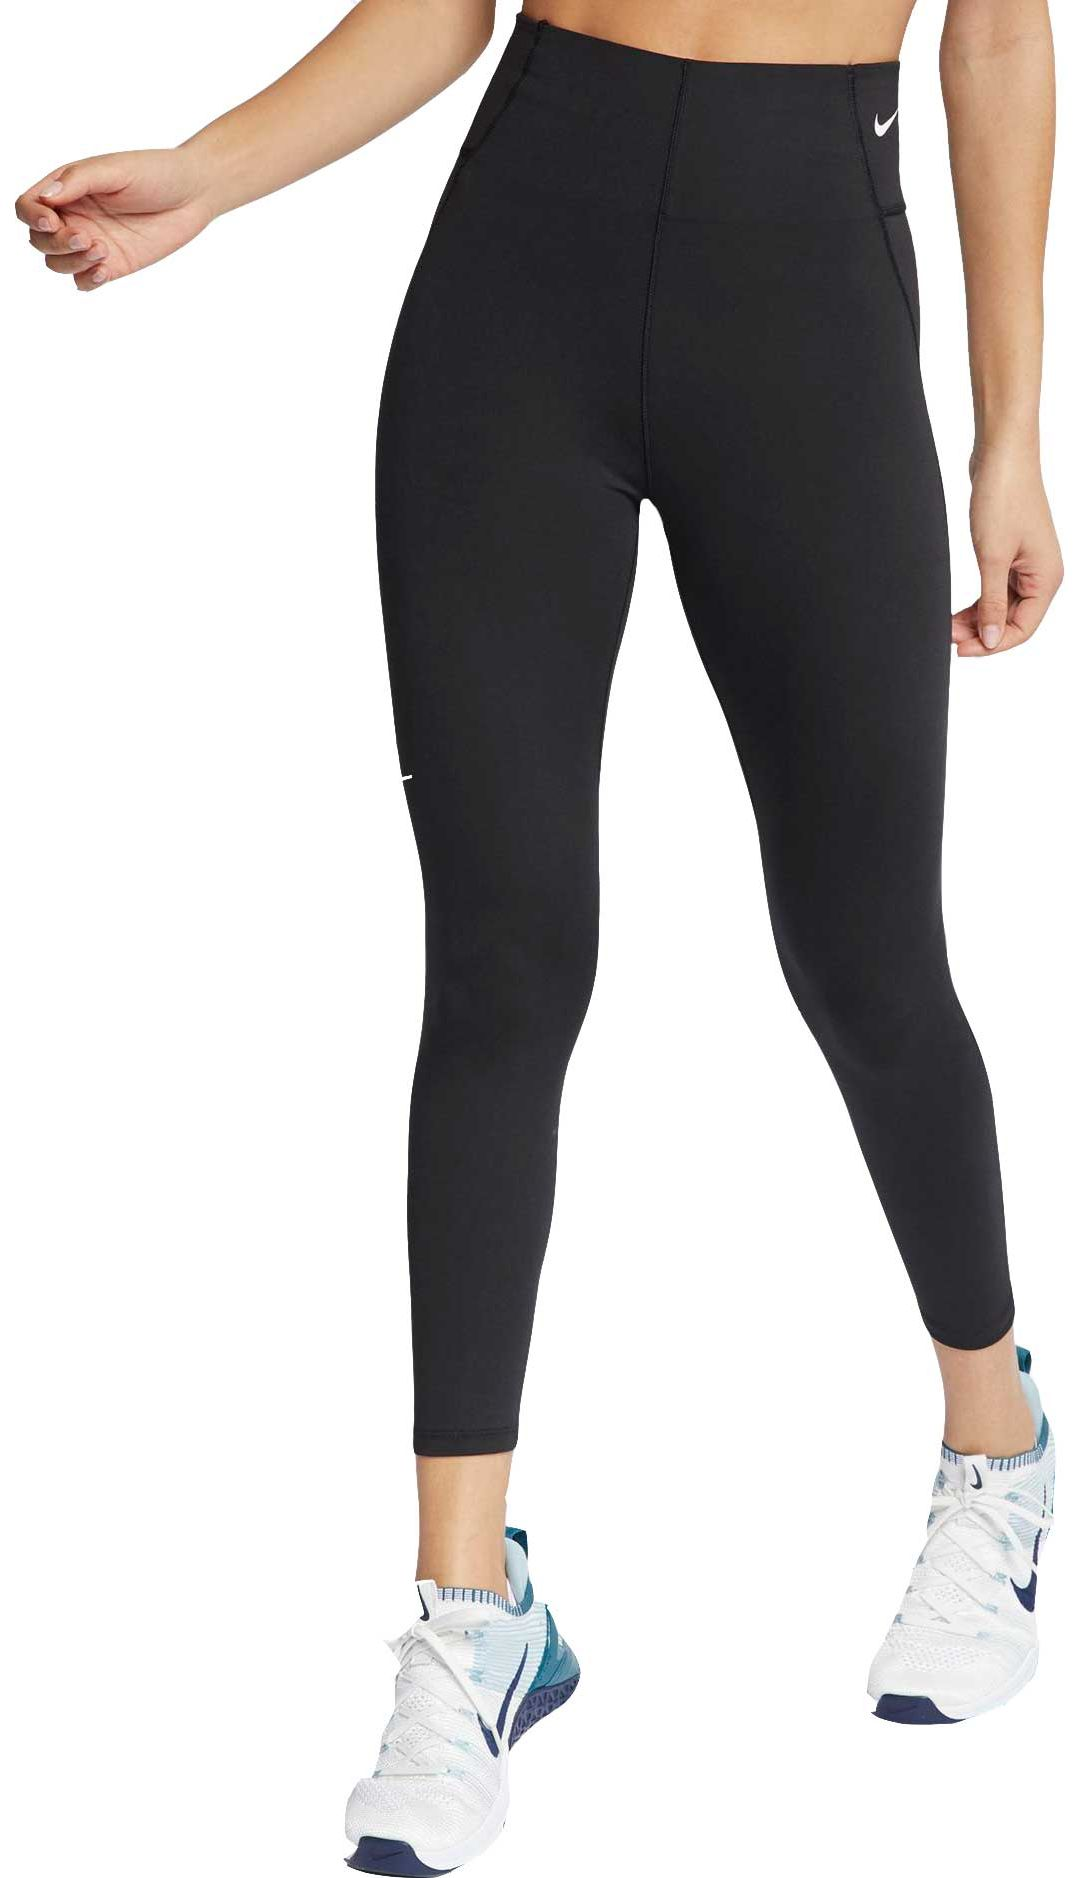 50d7594bf816e9 Nike One Women's Sculpt Victory Cropped Legging. noImageFound. Previous. 1.  2. 3